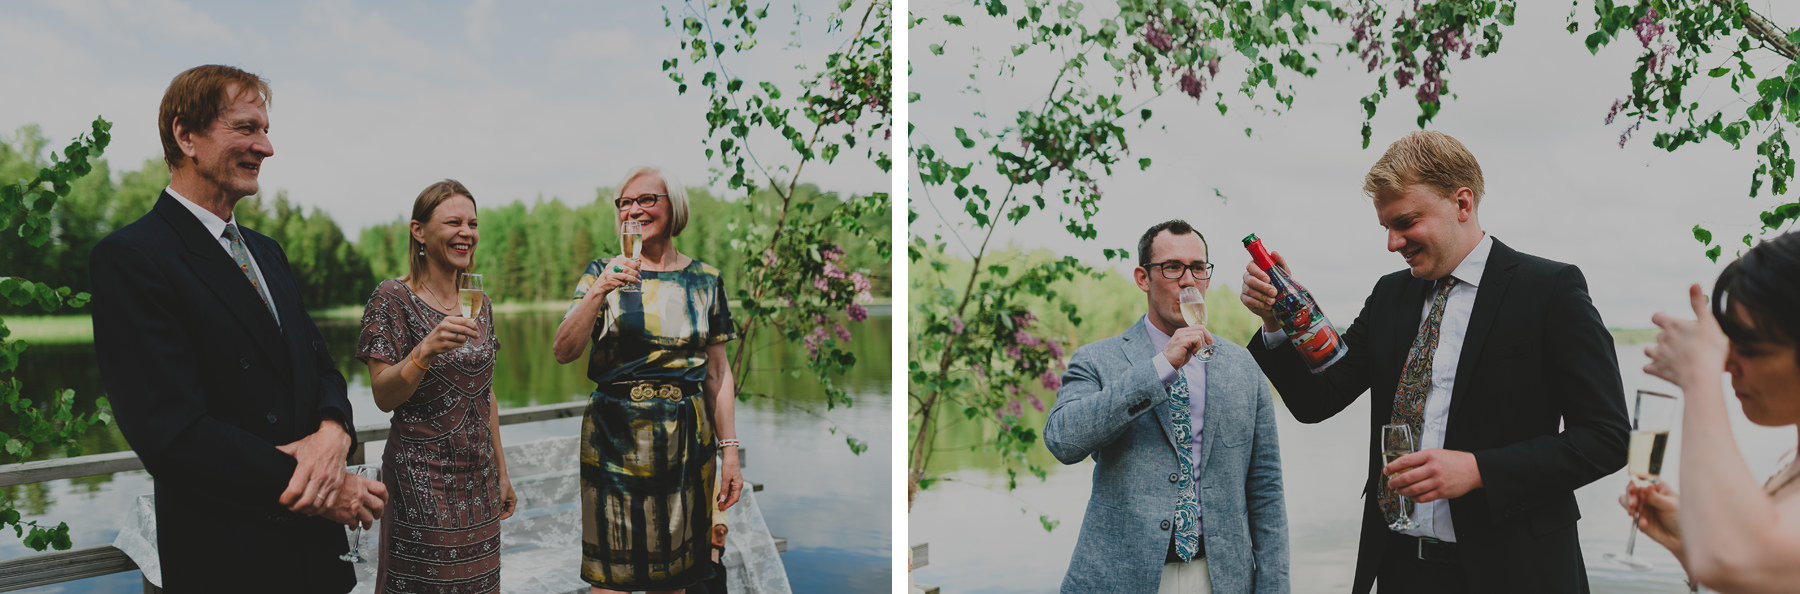 Finland Elopement Photographer 0033